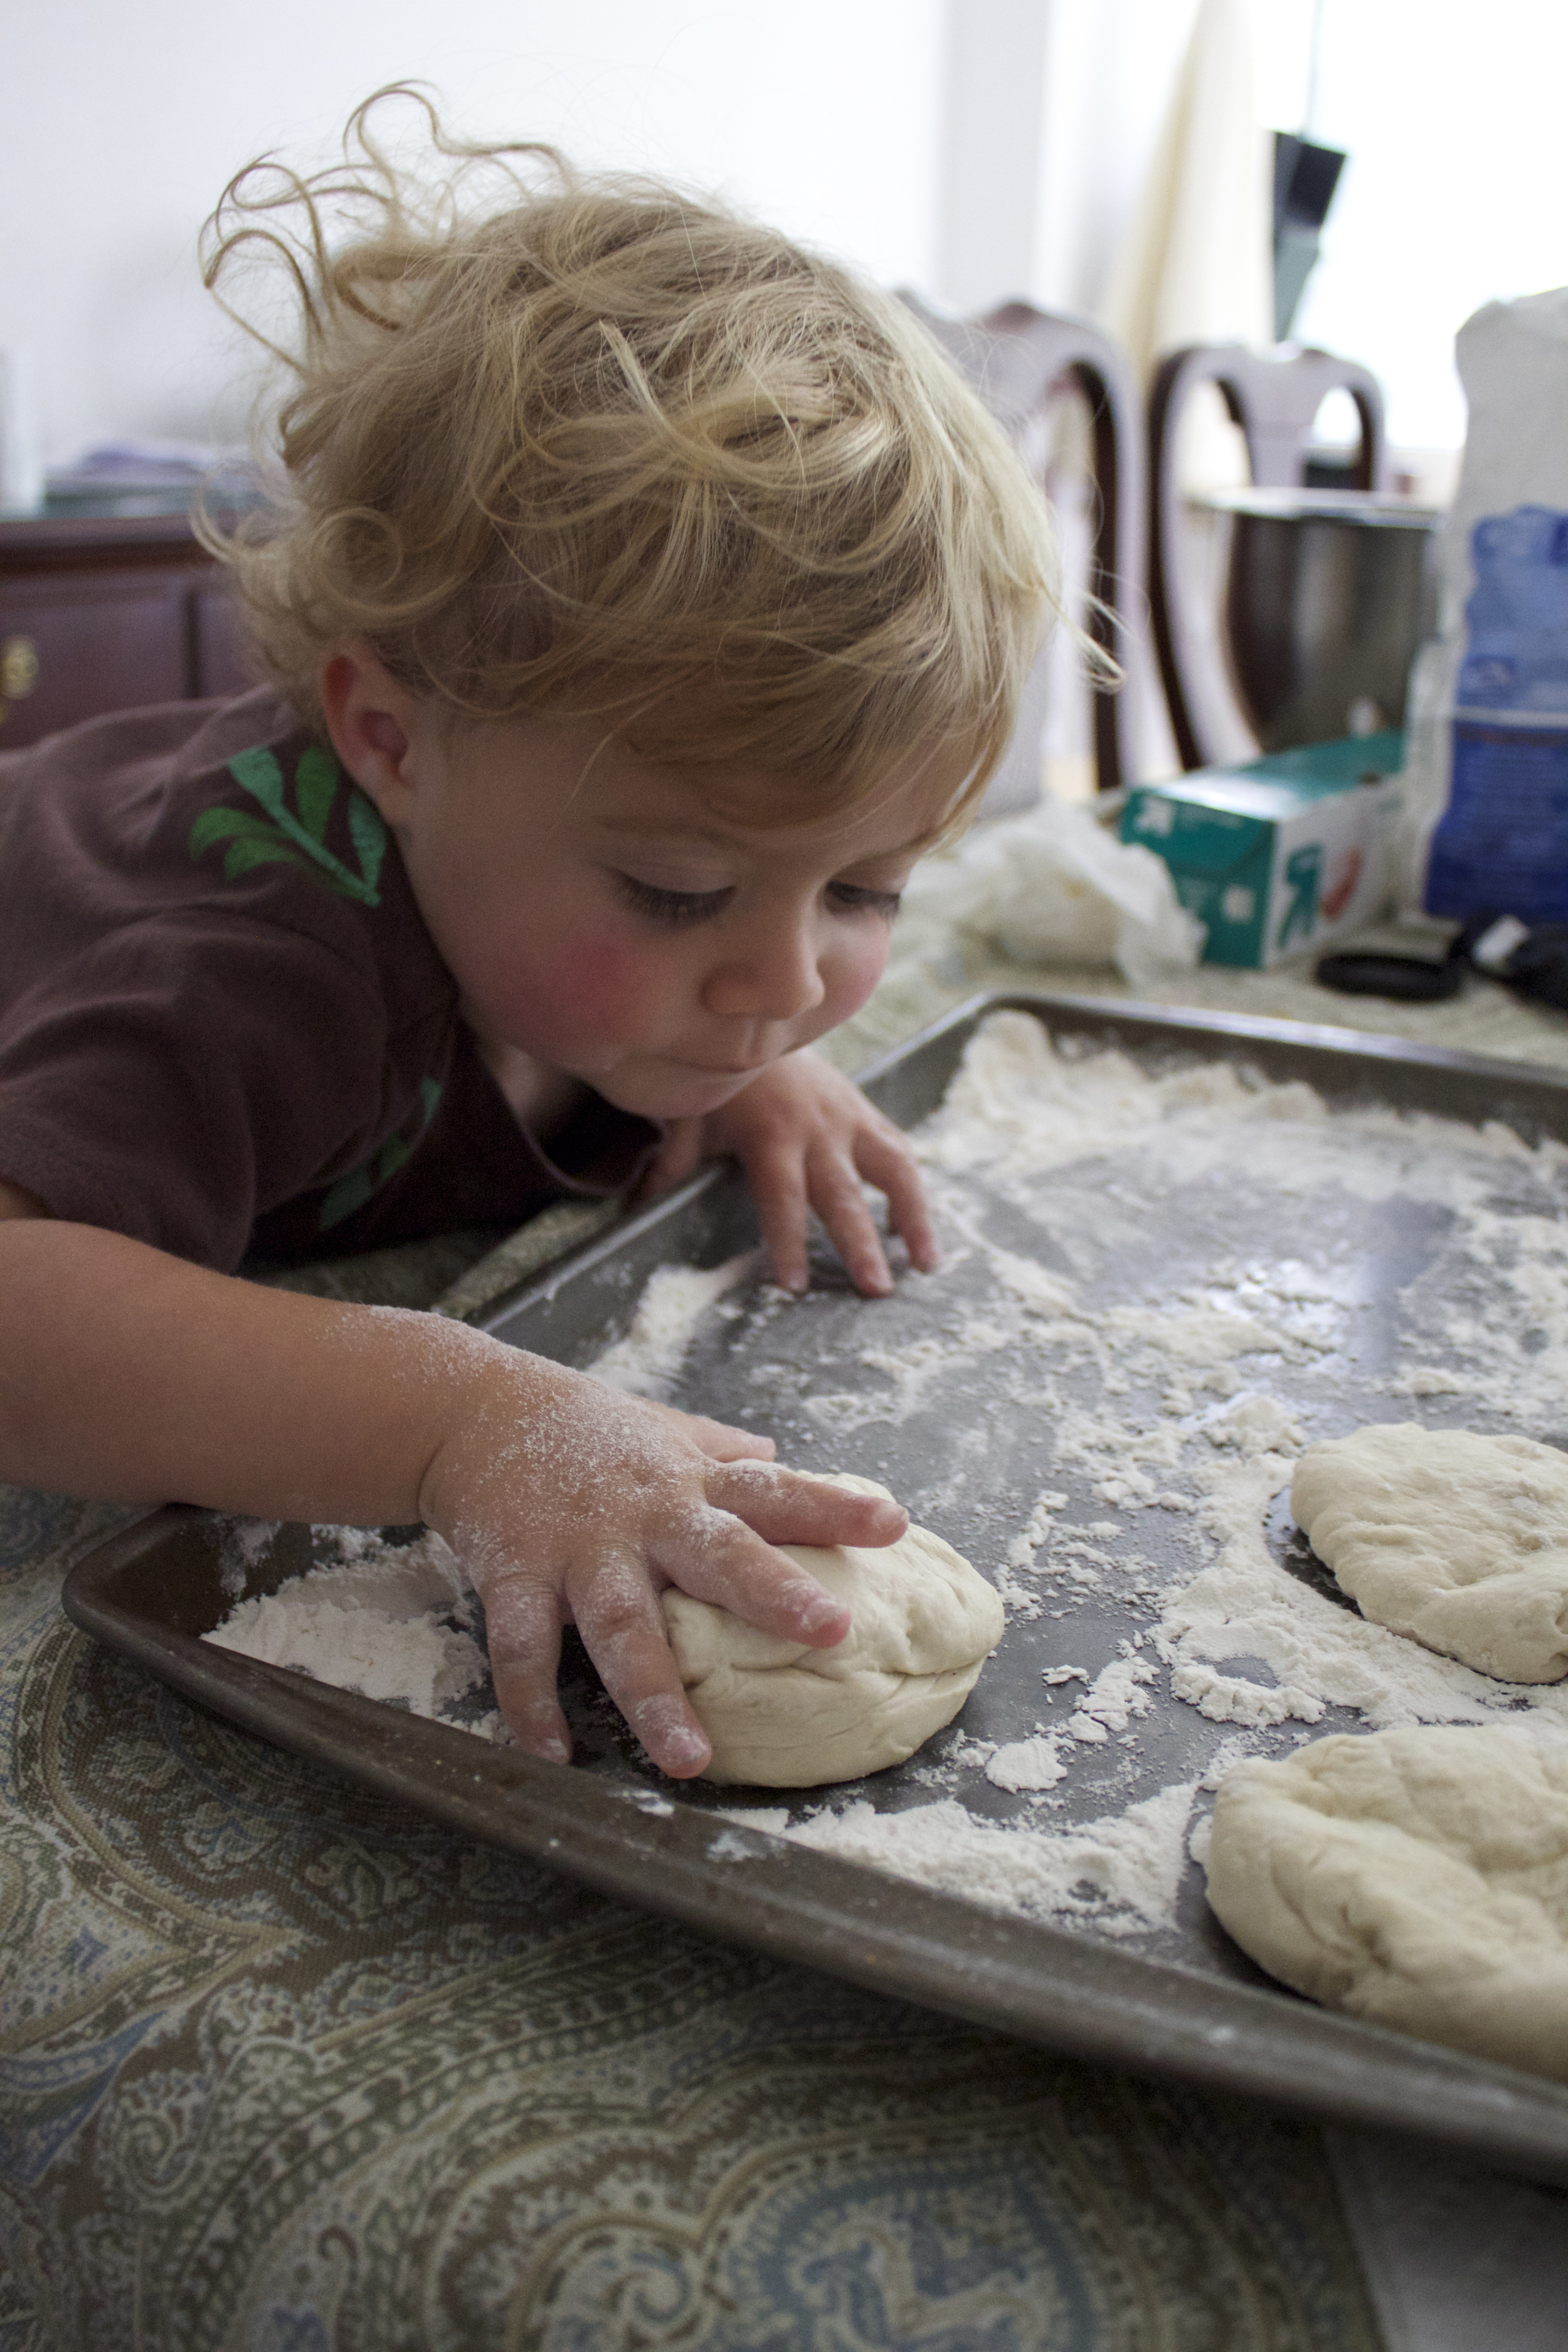 Happily patting the dough down.